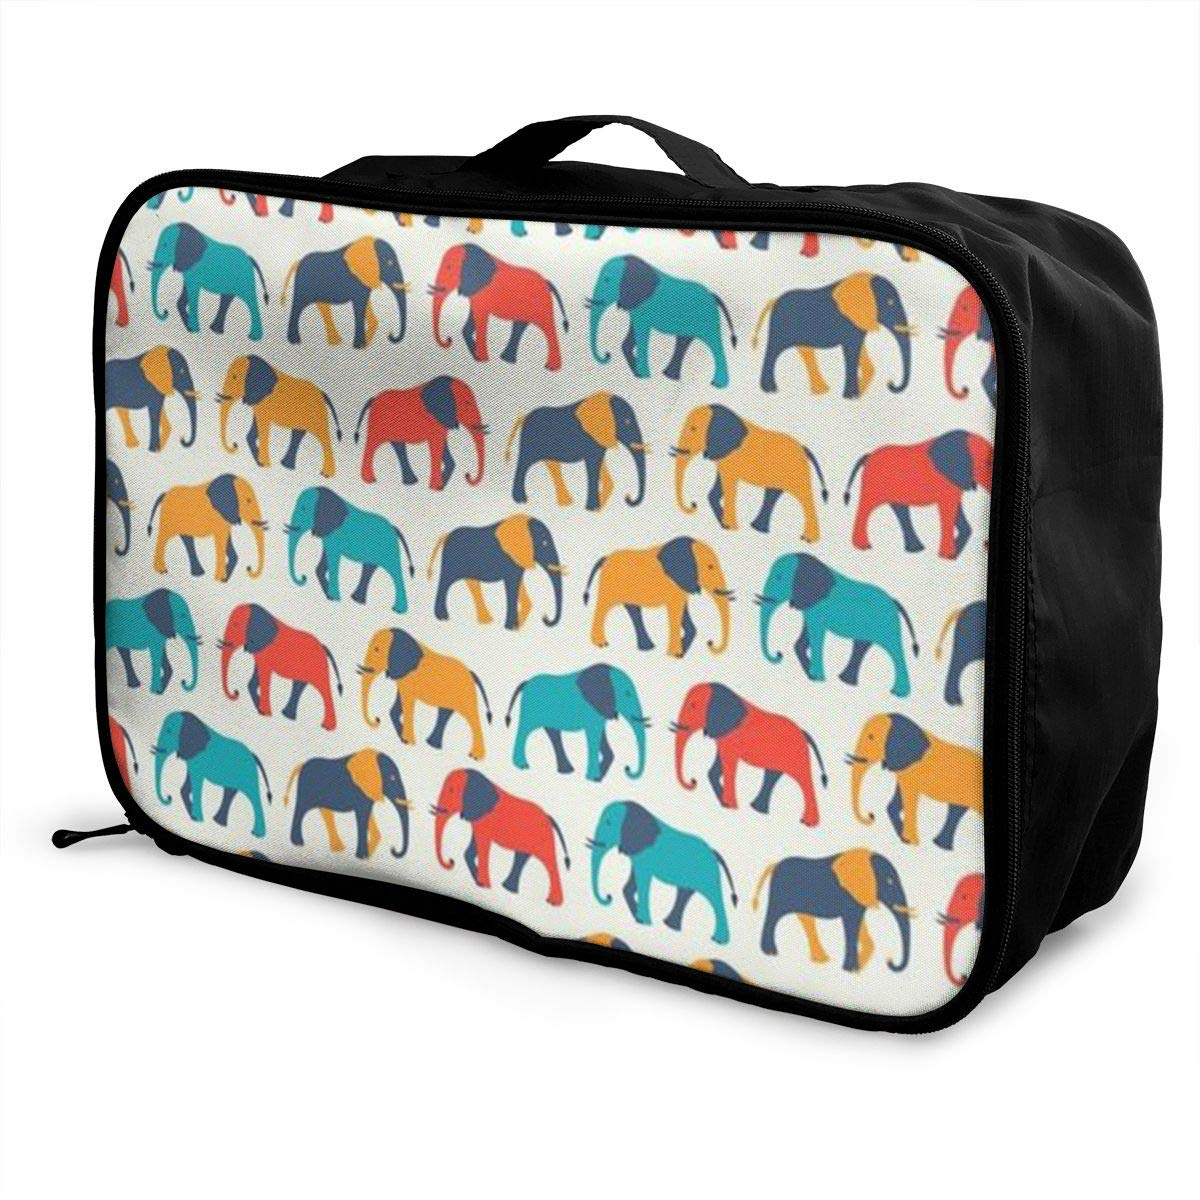 Animal Color Elephant Canvas Travel Weekender Bag,Fashion Custom Lightweight Large Capacity Portable Luggage Bag,Suitcase Trolley Bag